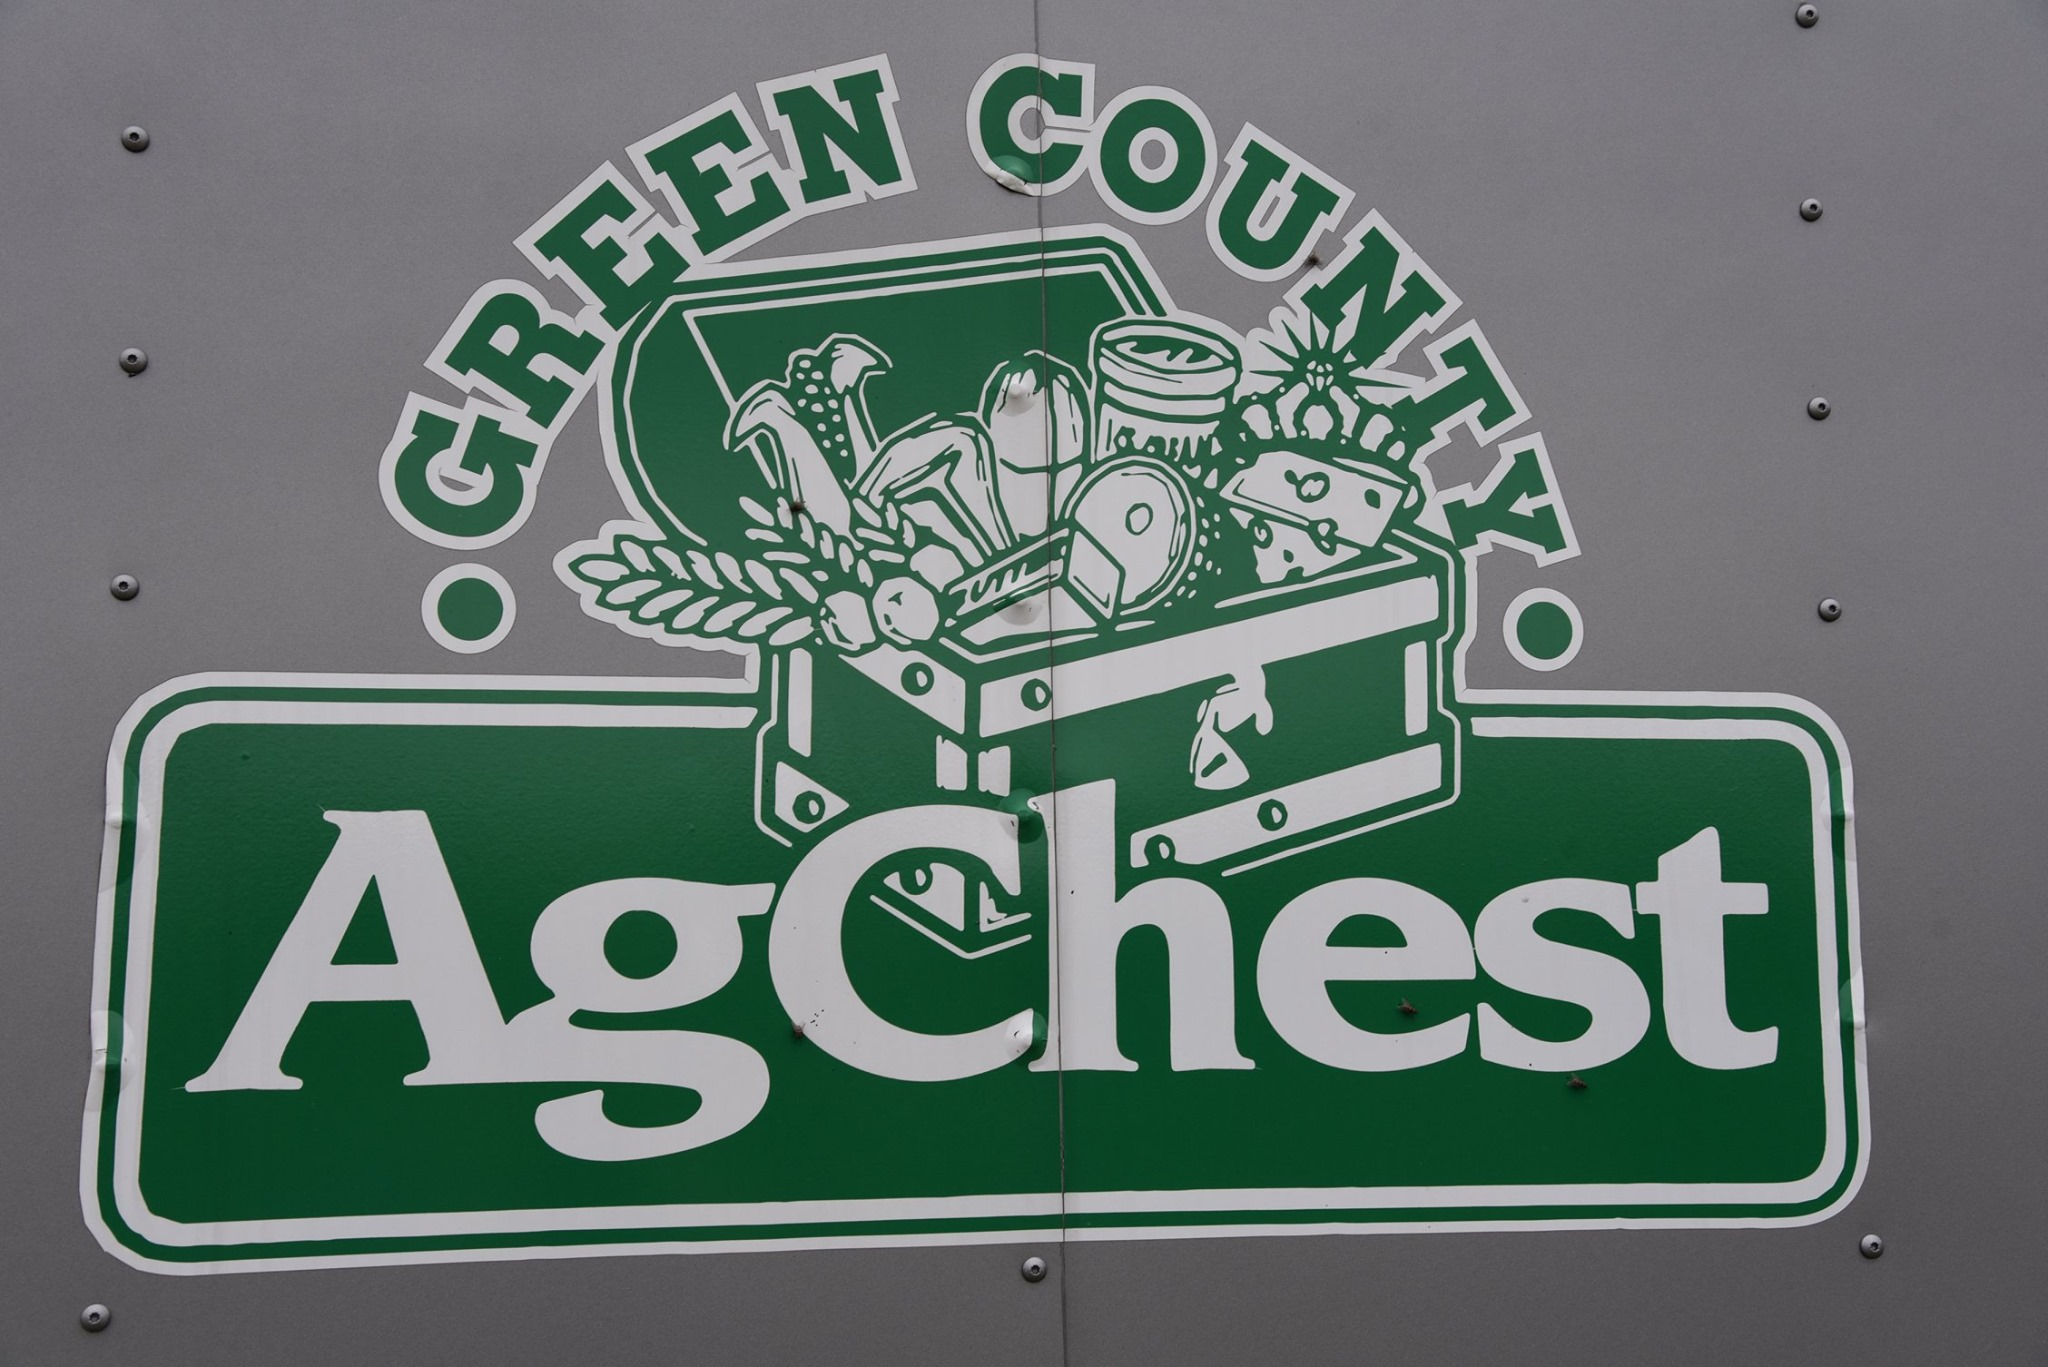 Green County Ag Chest Logo